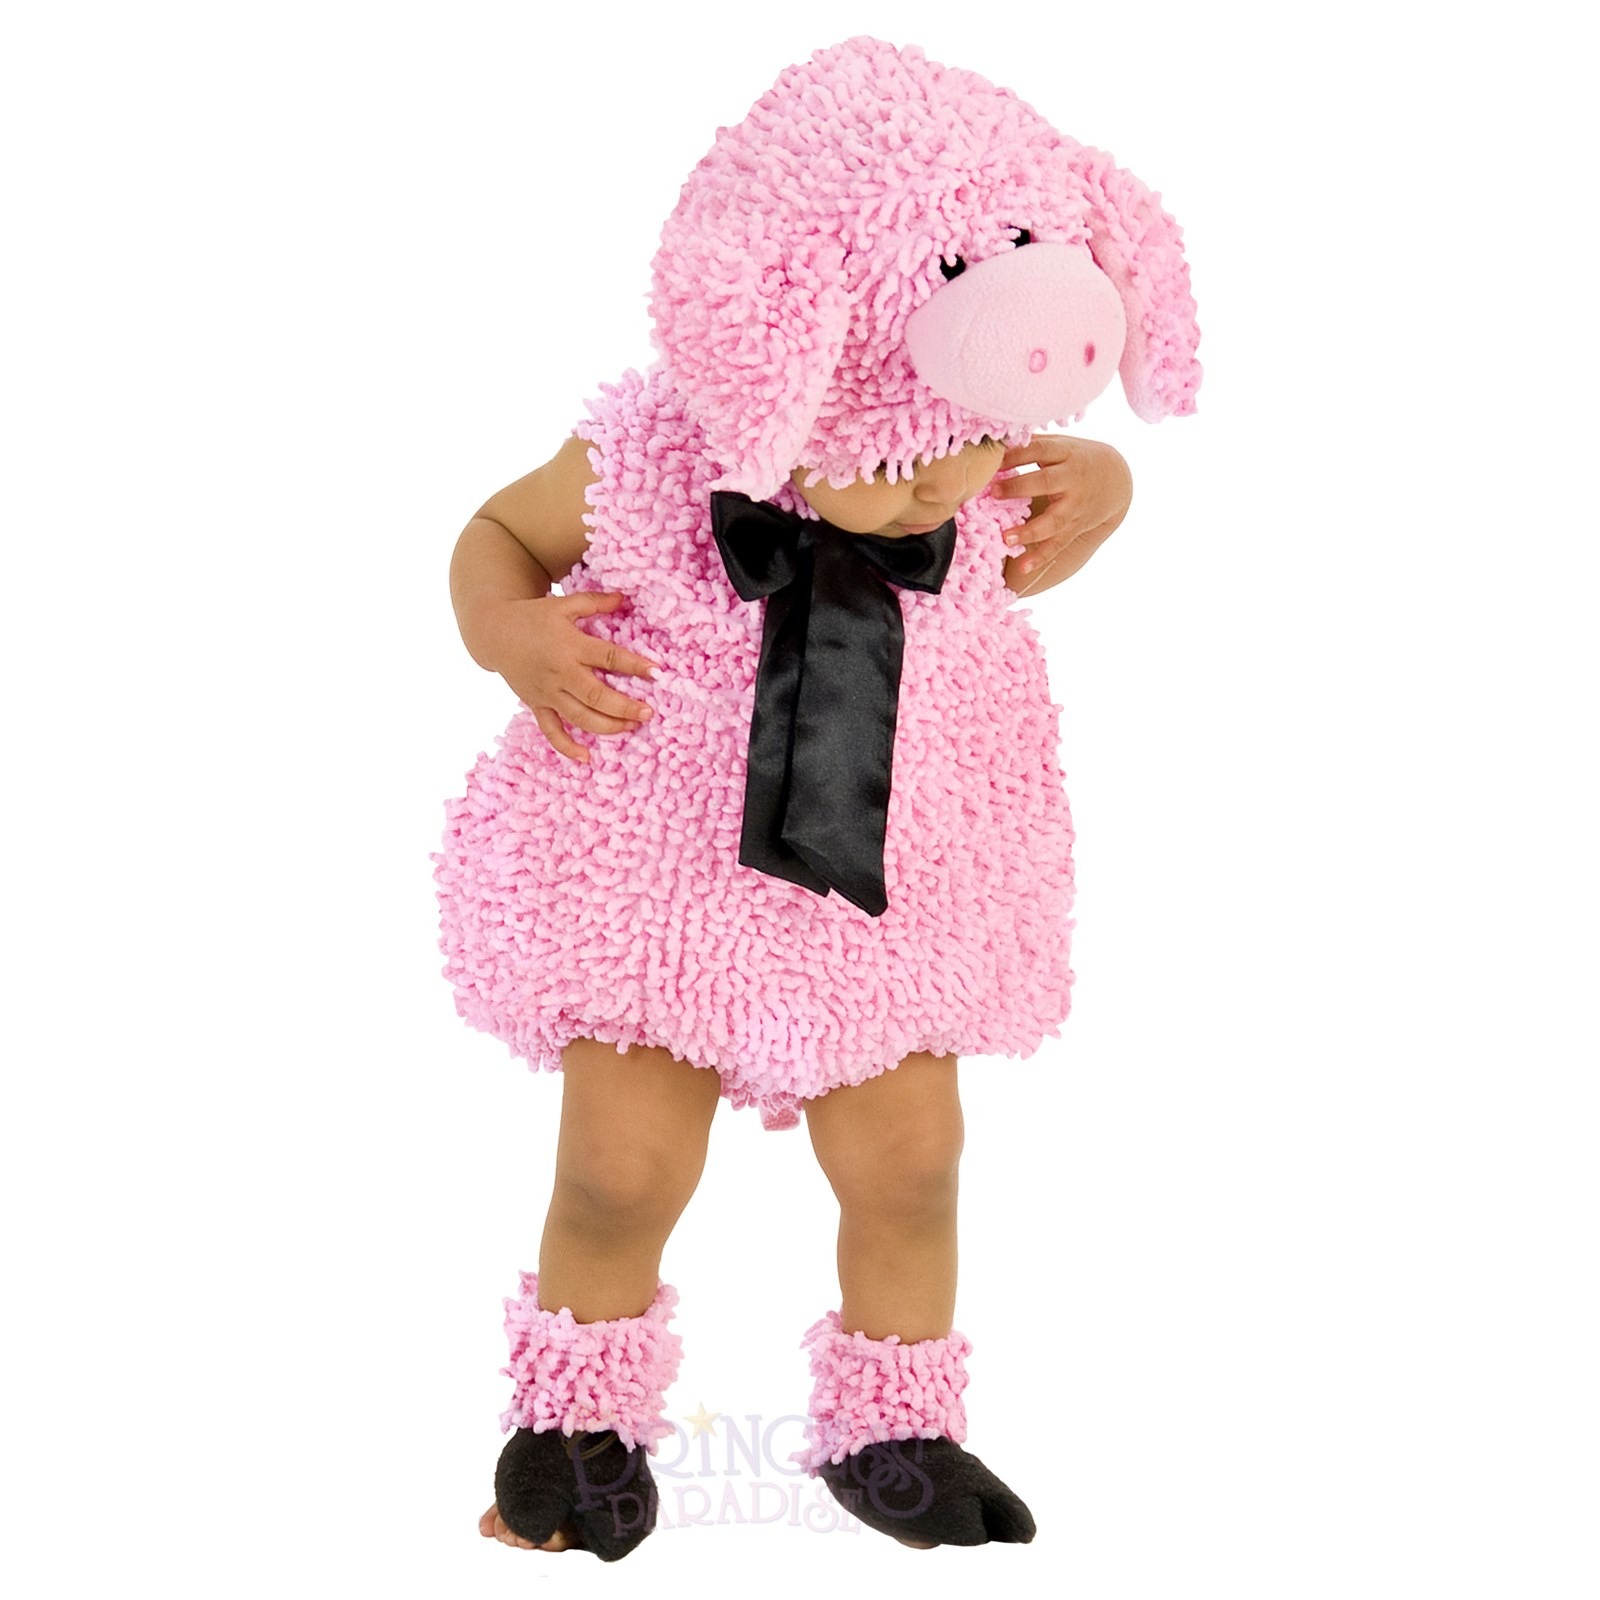 Squiggly Pig Infant / Toddler Costume | BuyCostumes.com